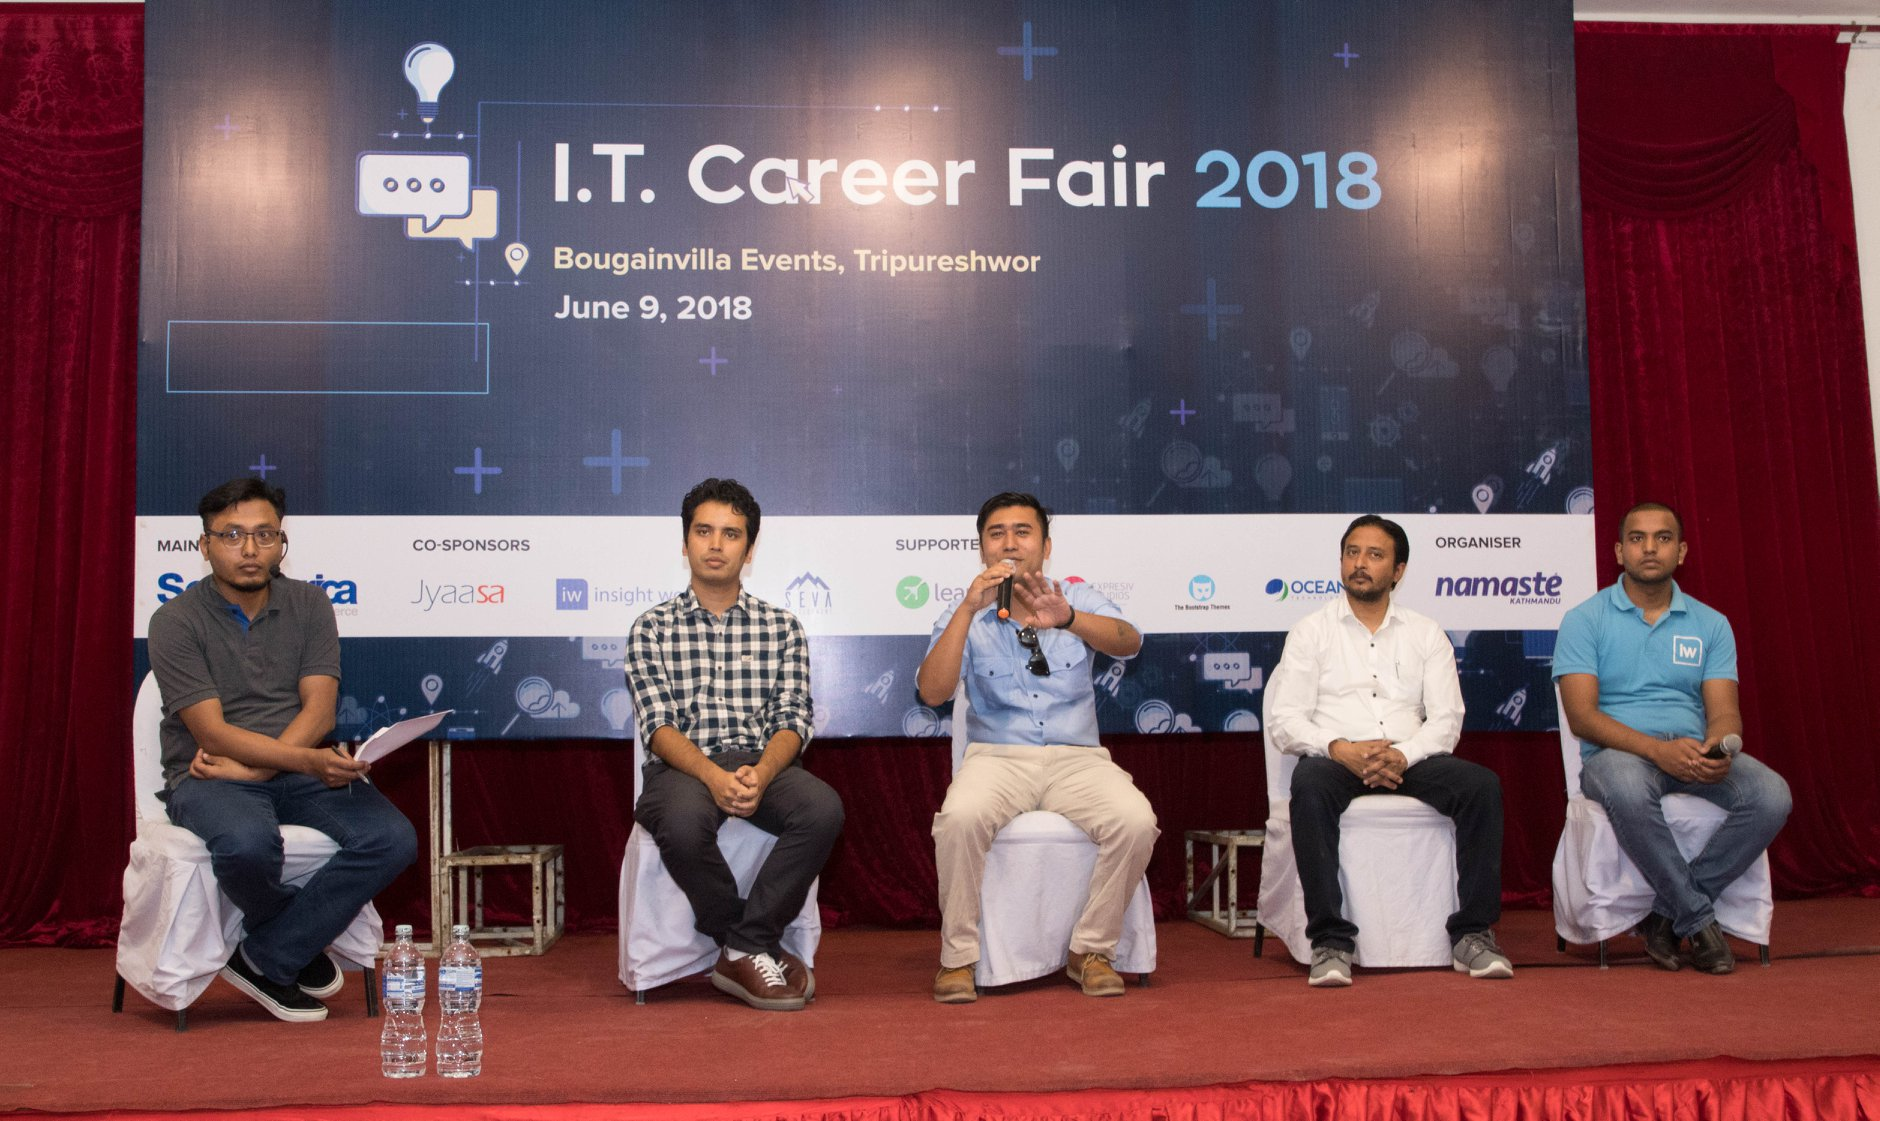 IT Career Fair – Panel Discussion 1: Right Skill Sets for Career in I.T.